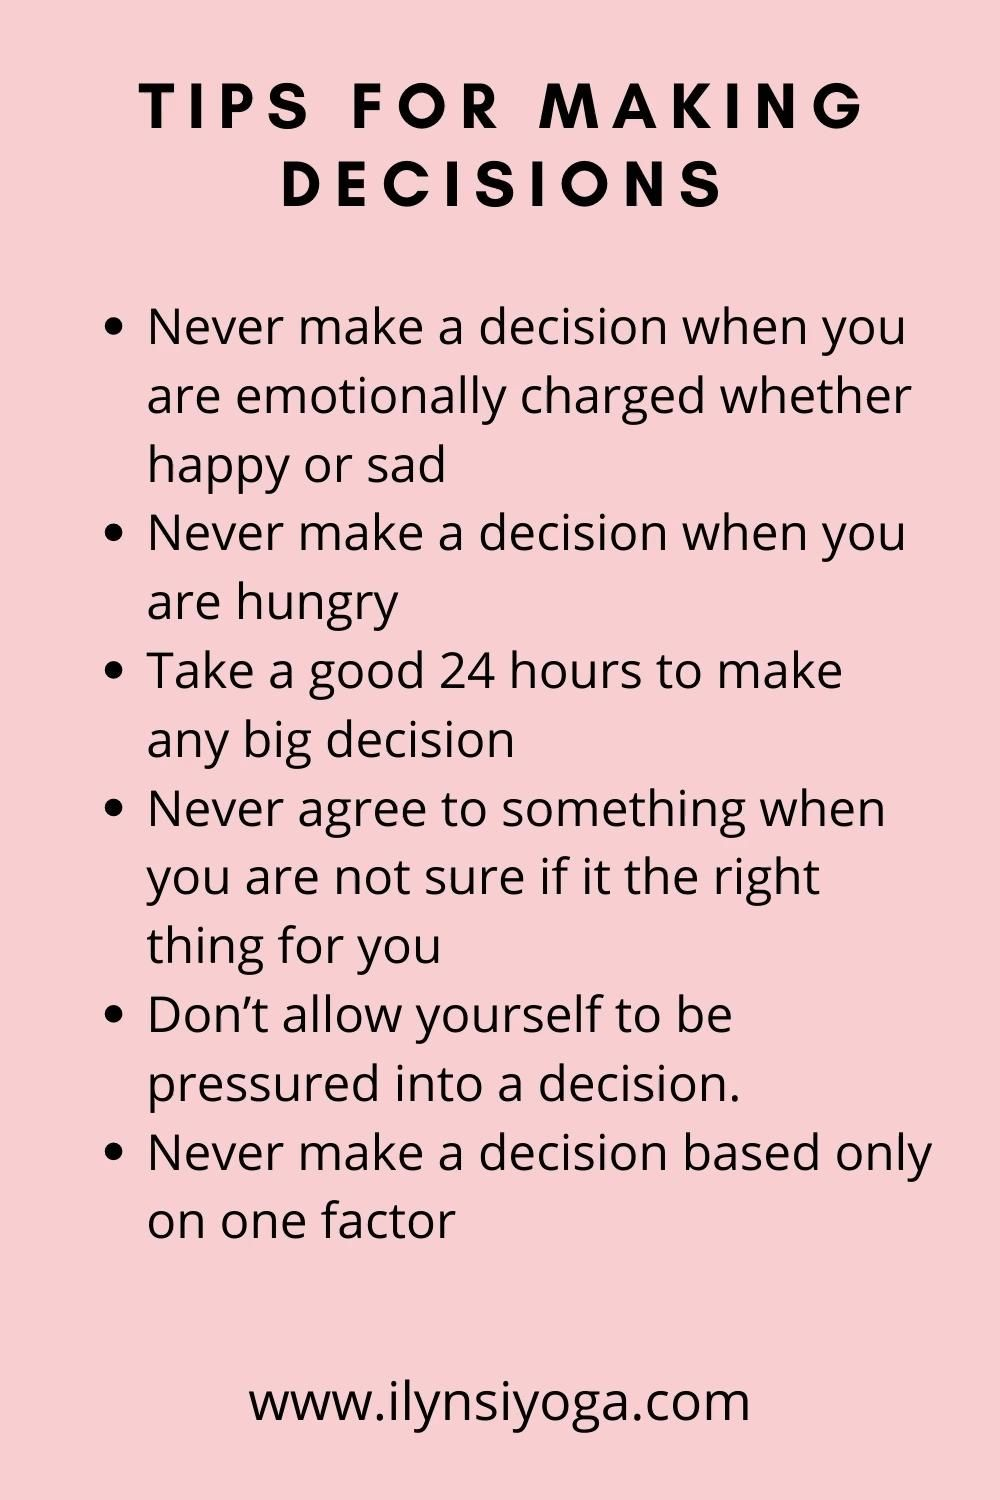 Tips for Making Decisions